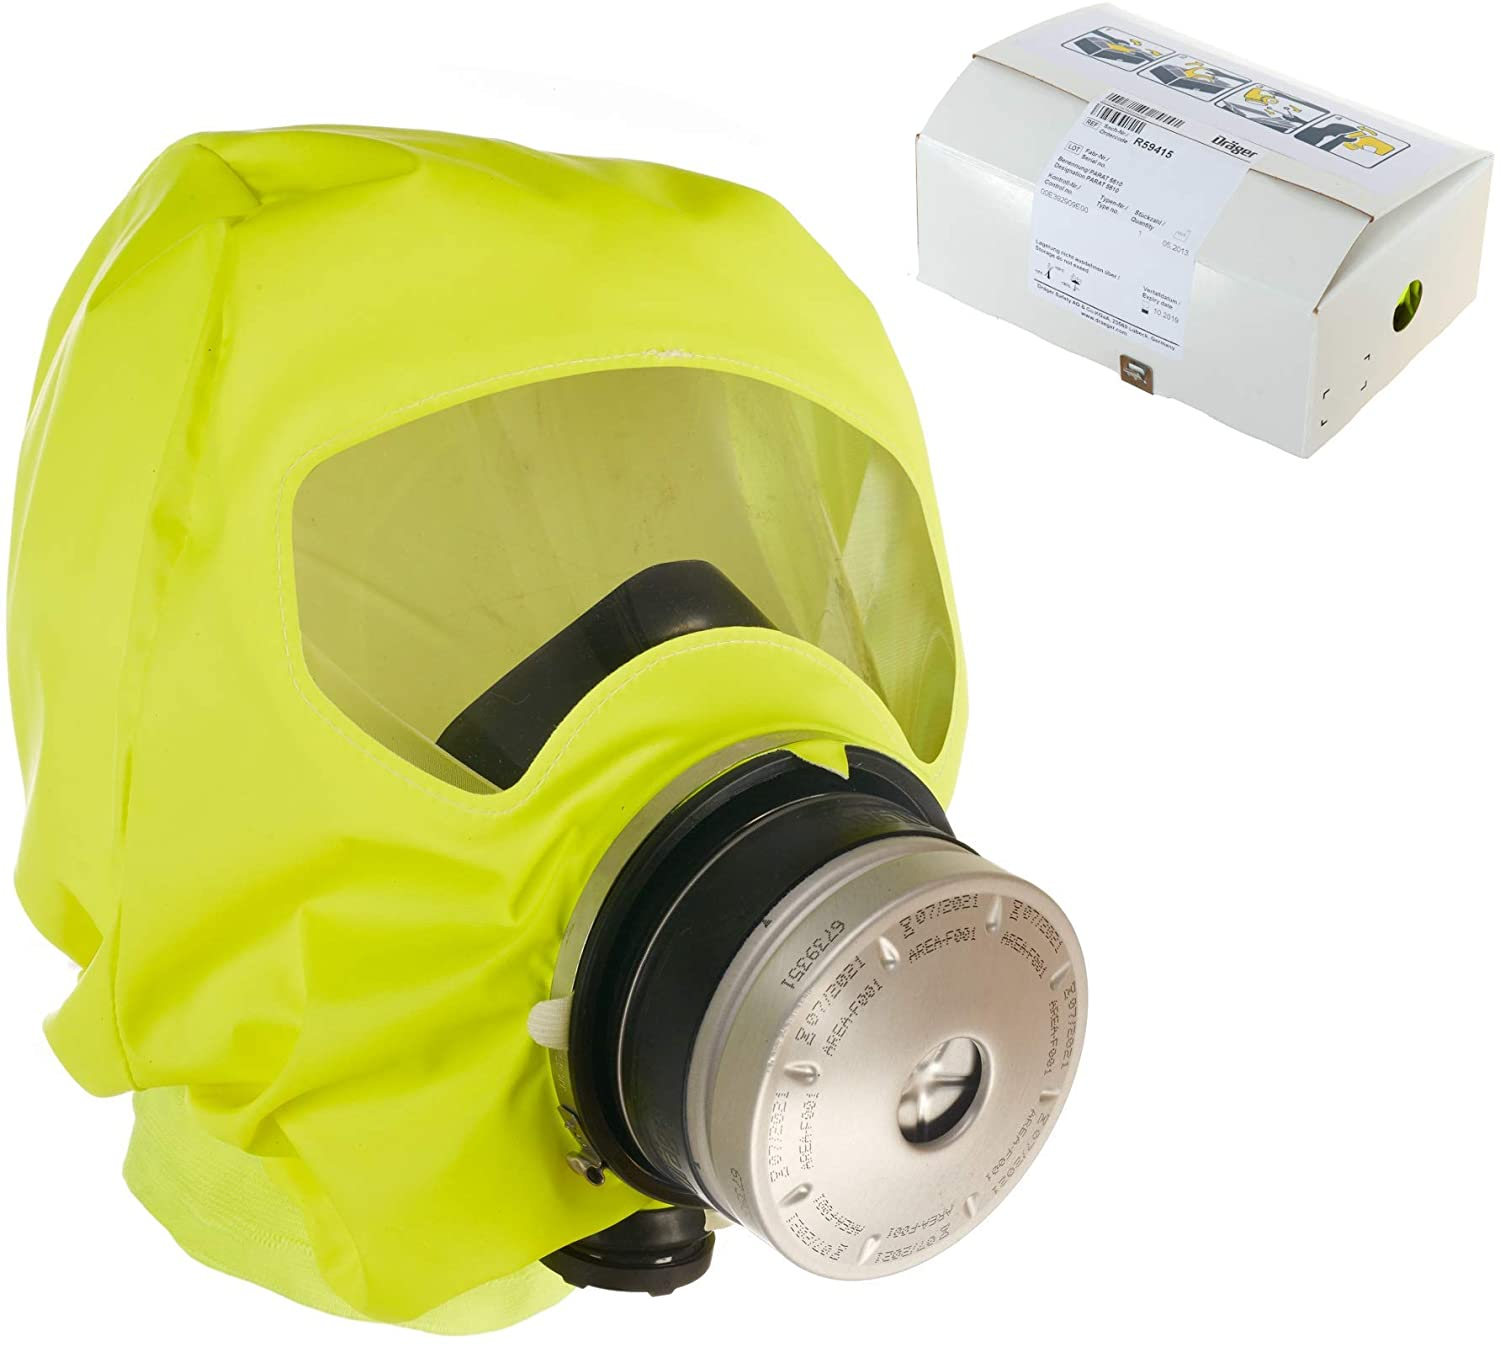 Drager 5510 Fire Mask